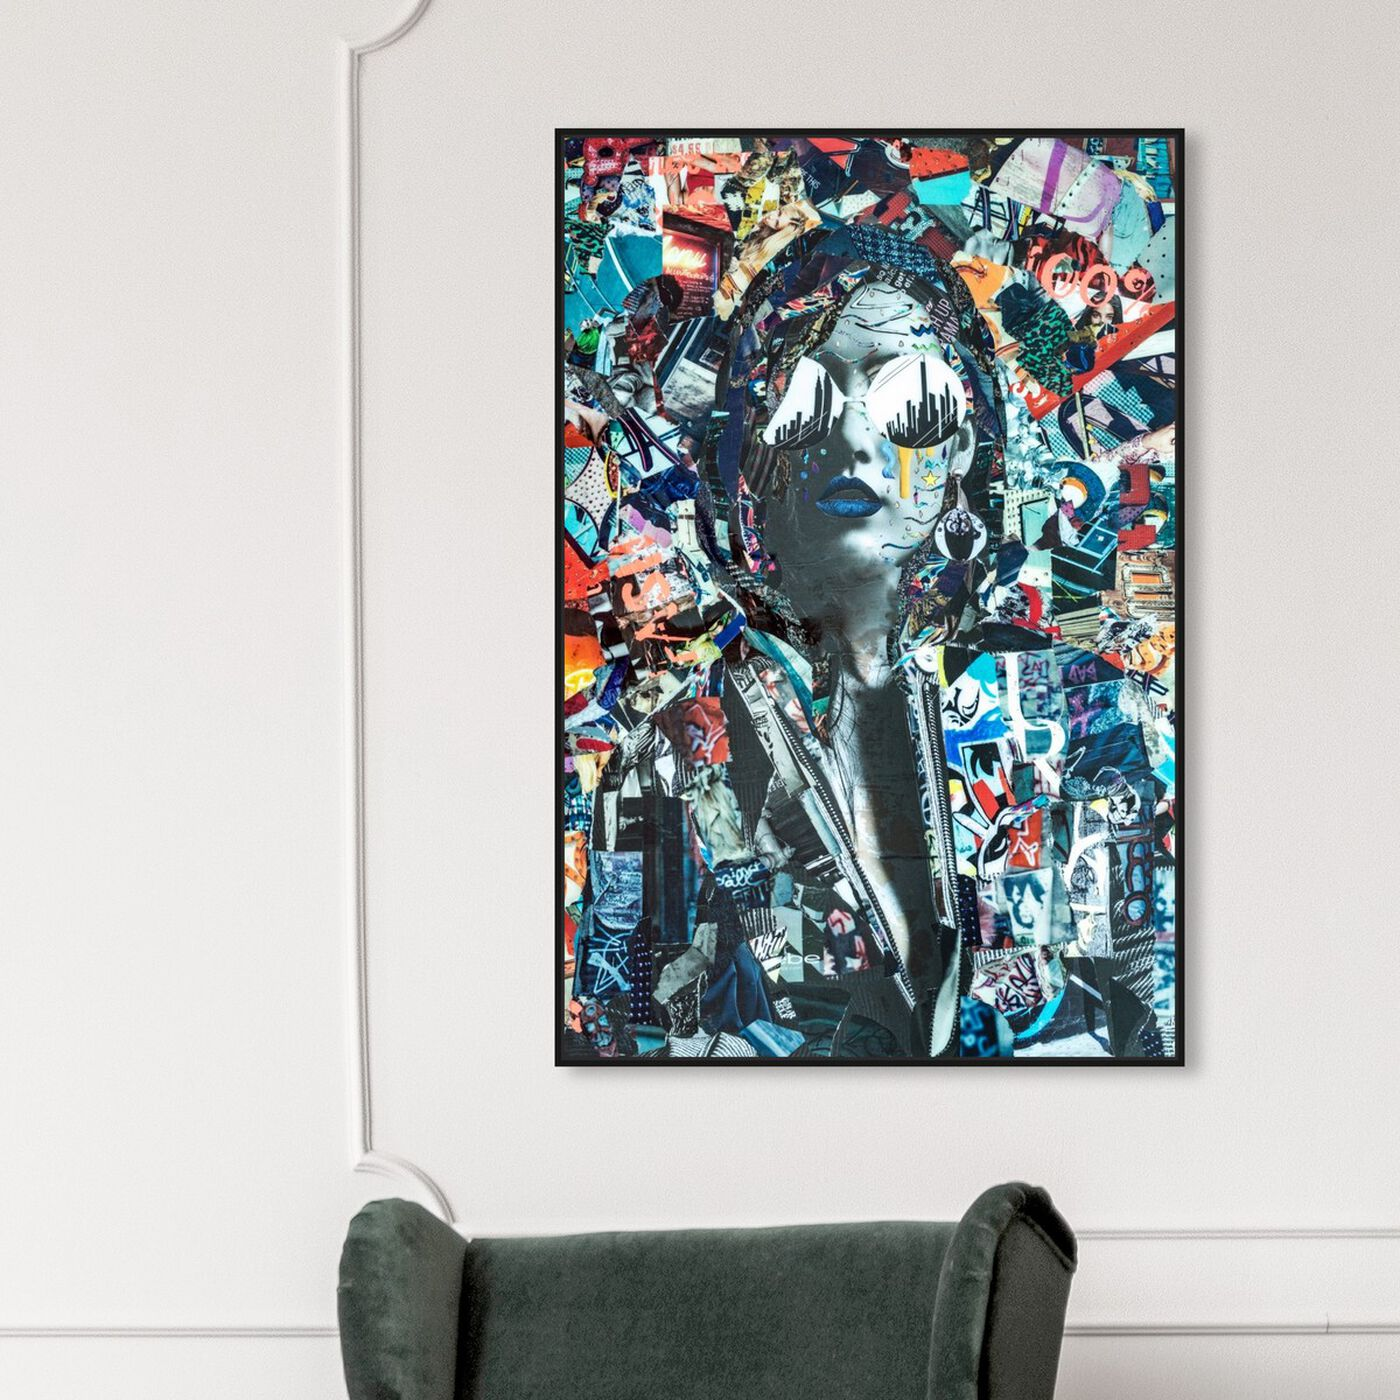 Hanging view of City by Katy Hirschfeld I featuring fashion and glam and portraits art.